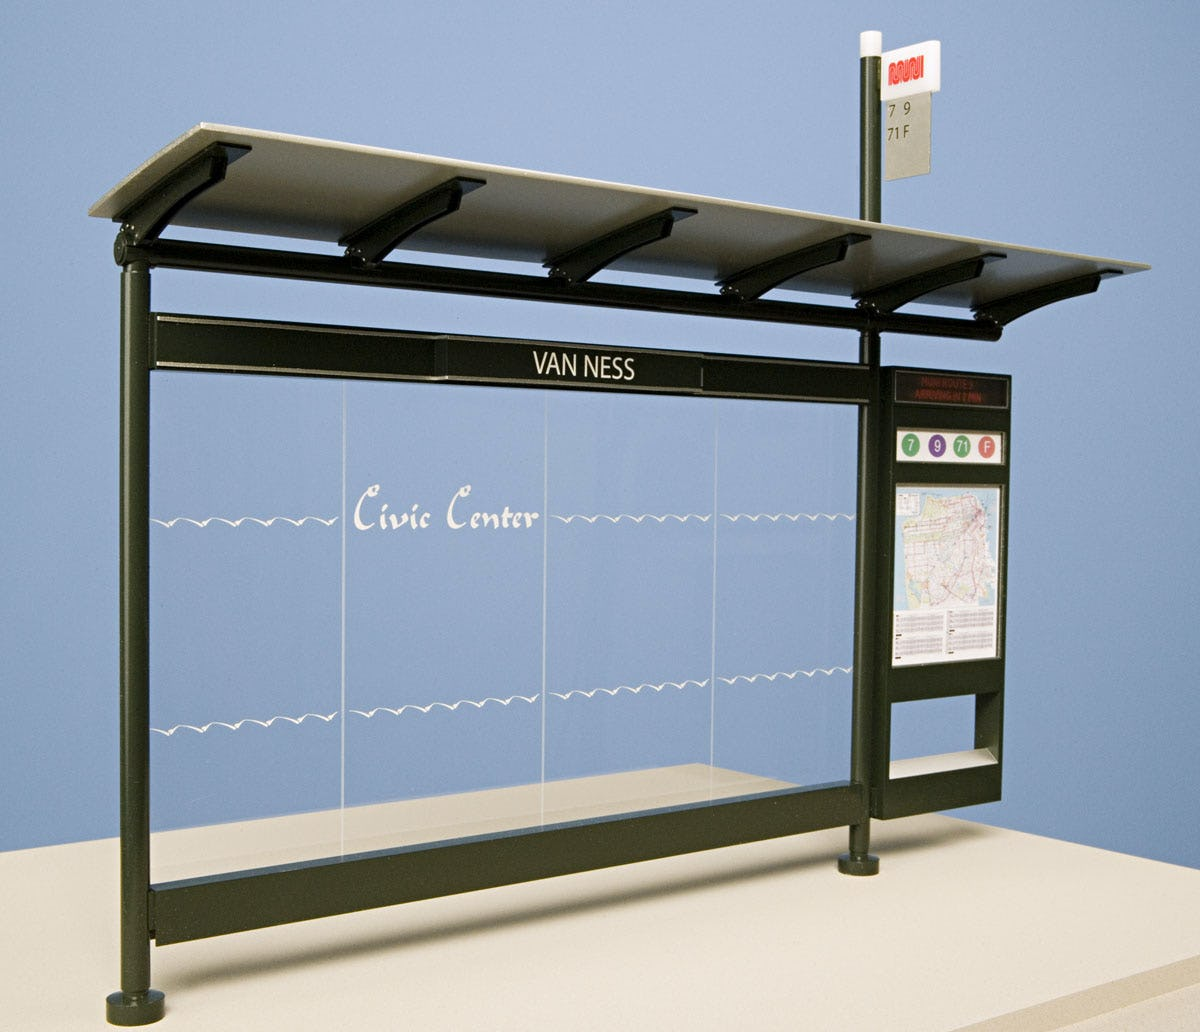 Cbs bus shelters 612